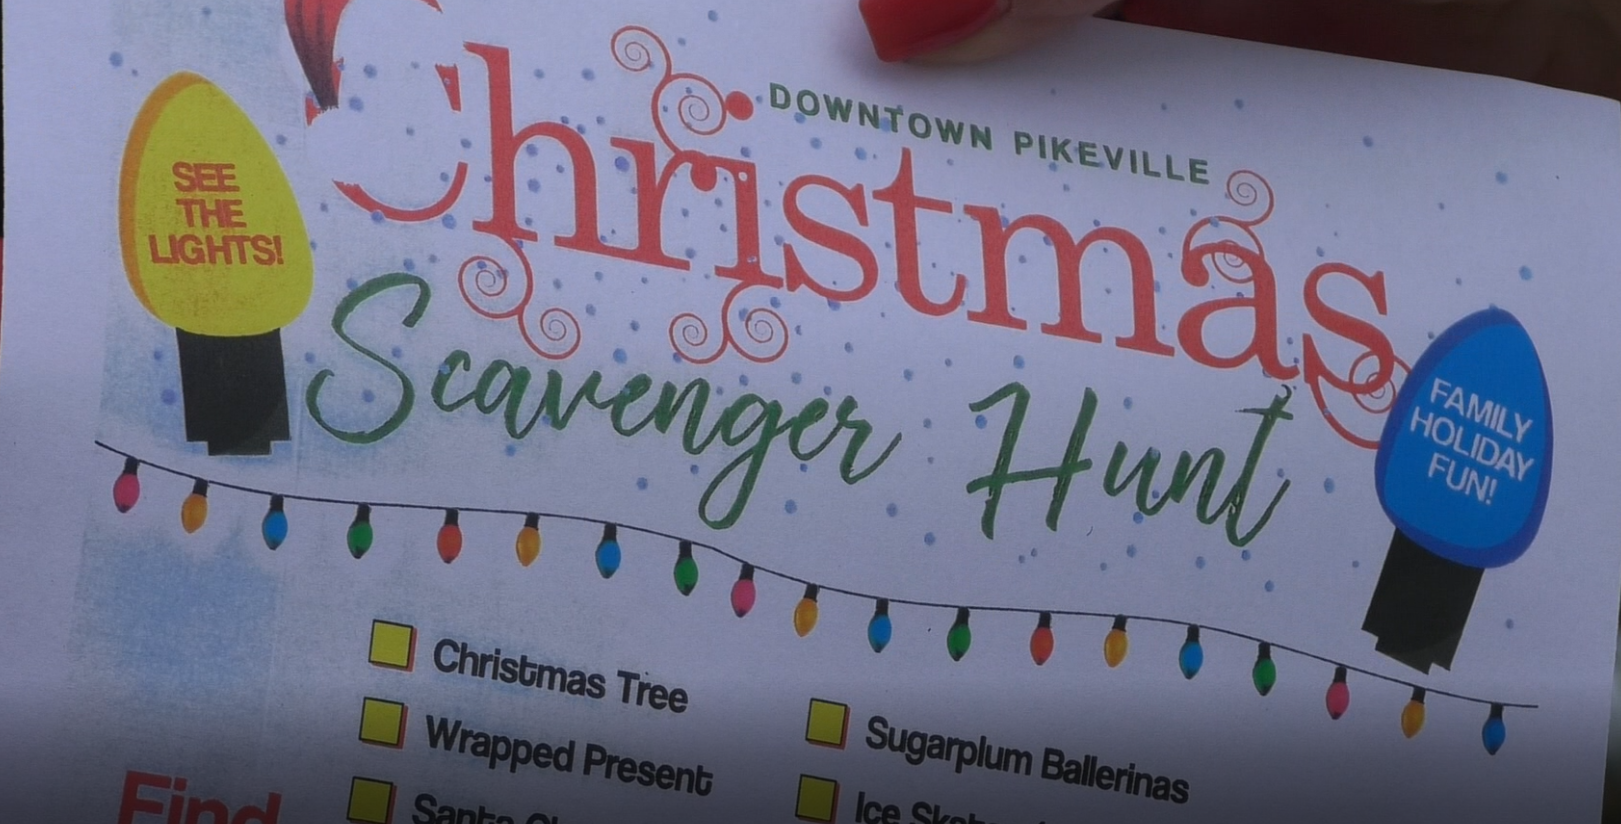 Christmas continues in the City of Pikeville